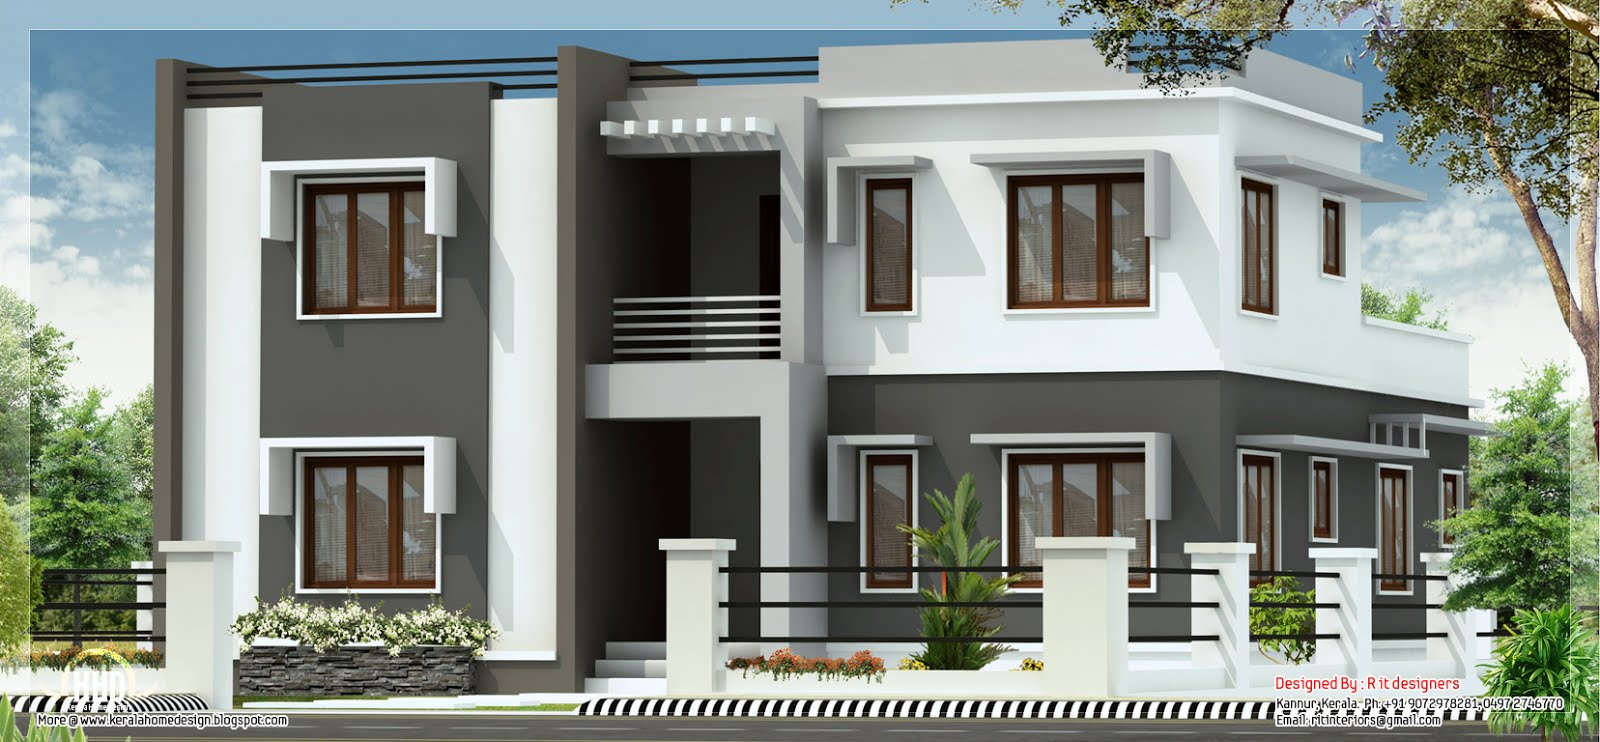 Wide flat roof 3 bedroom home design kerala home design for Flat roof home plans